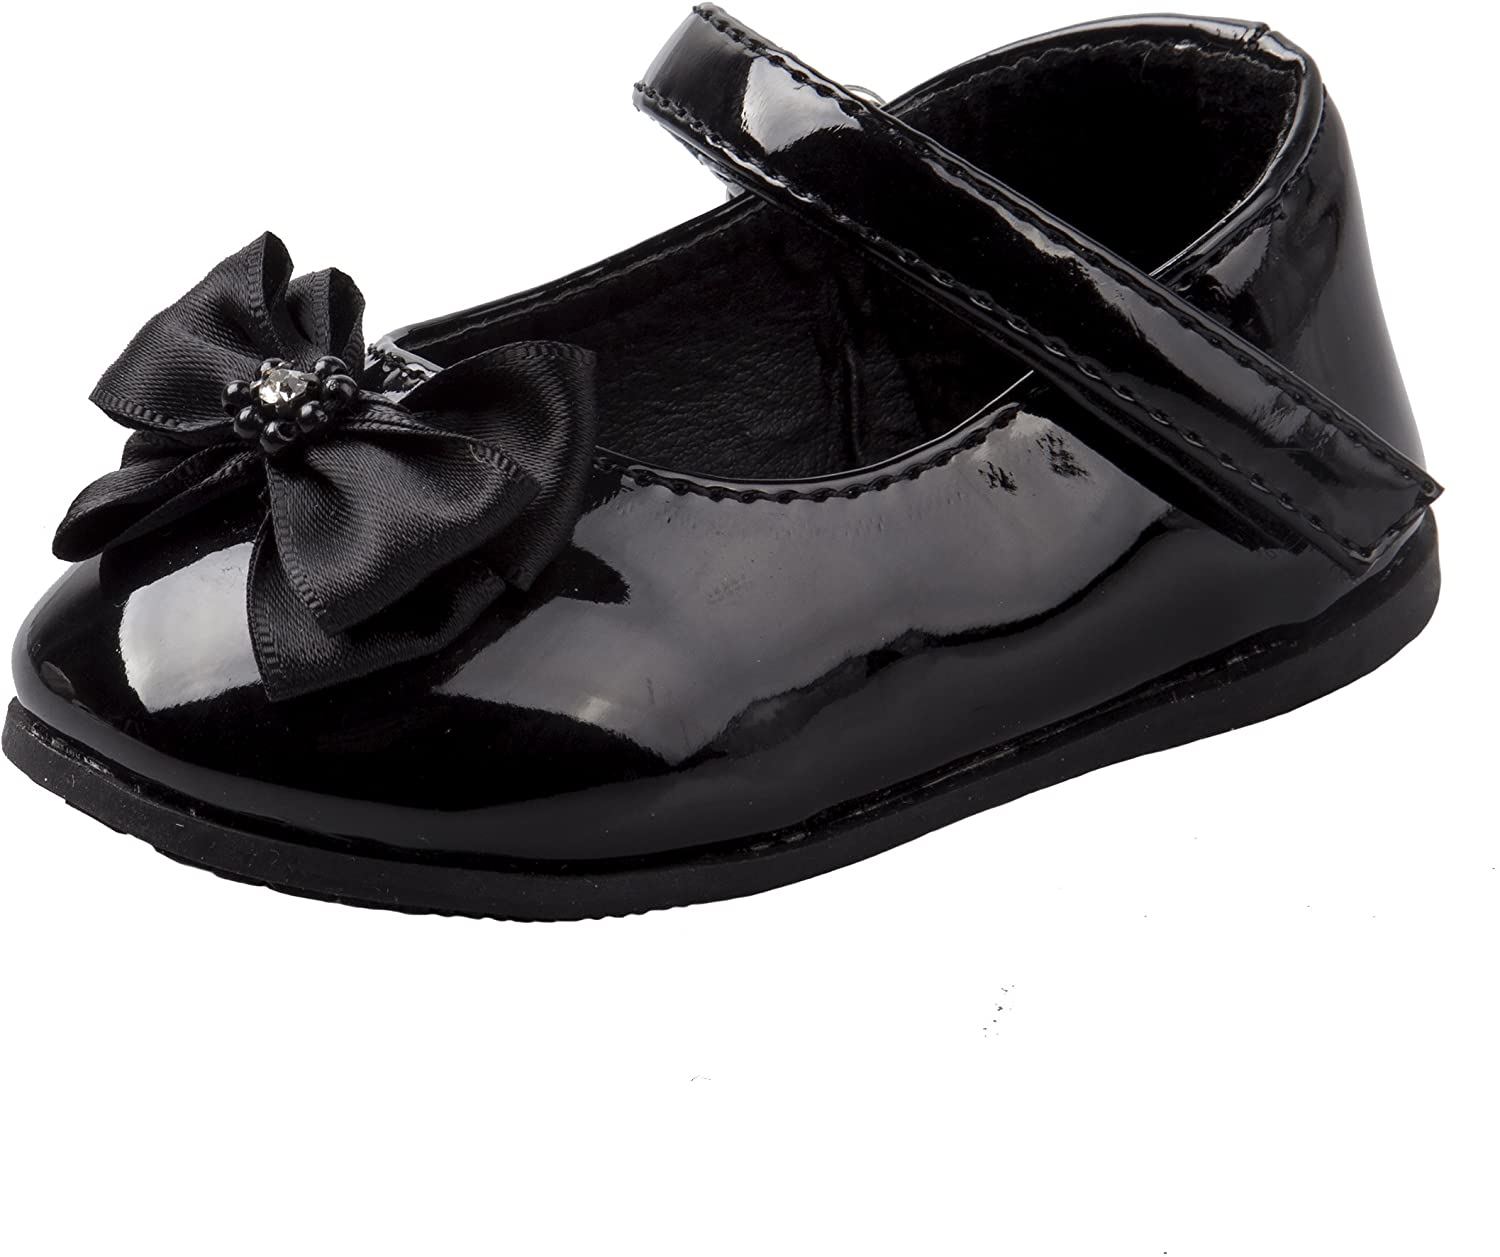 Josmo Baby Girls Patent Dressy Shoe Bow (Infant, Toddler)